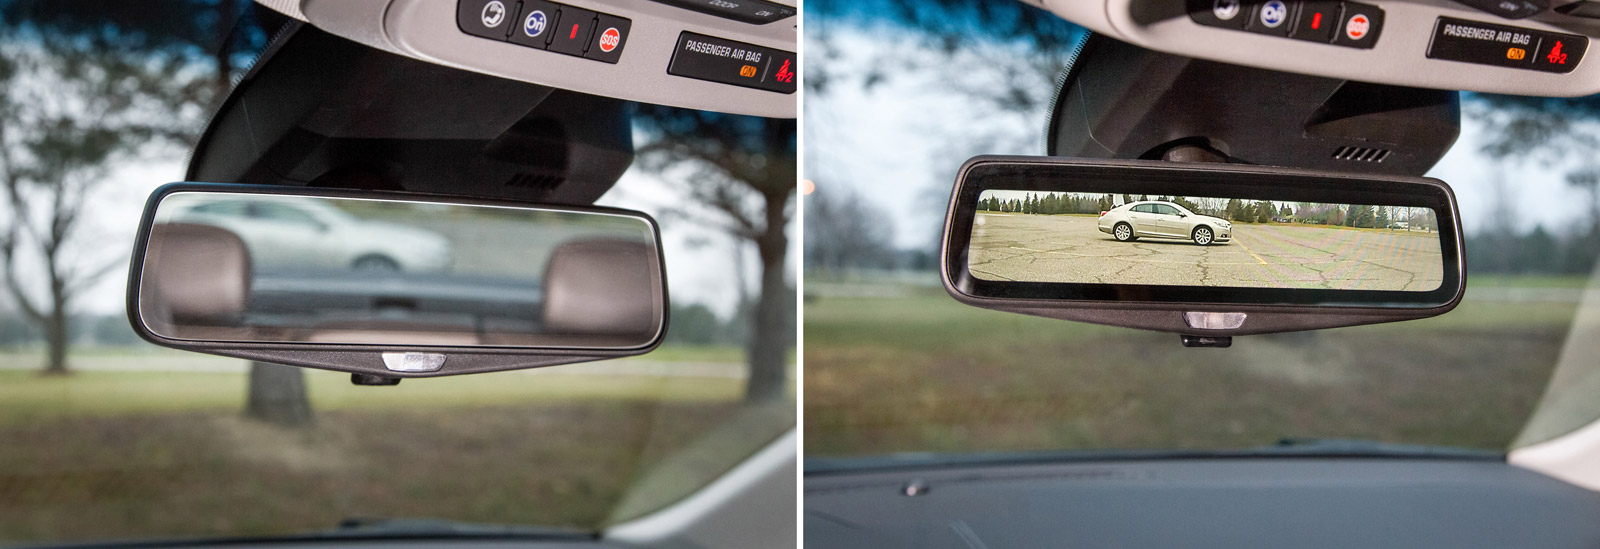 streaming-video-rearview-mirror-from-the-2016-cadillac-ct6_100494755_h